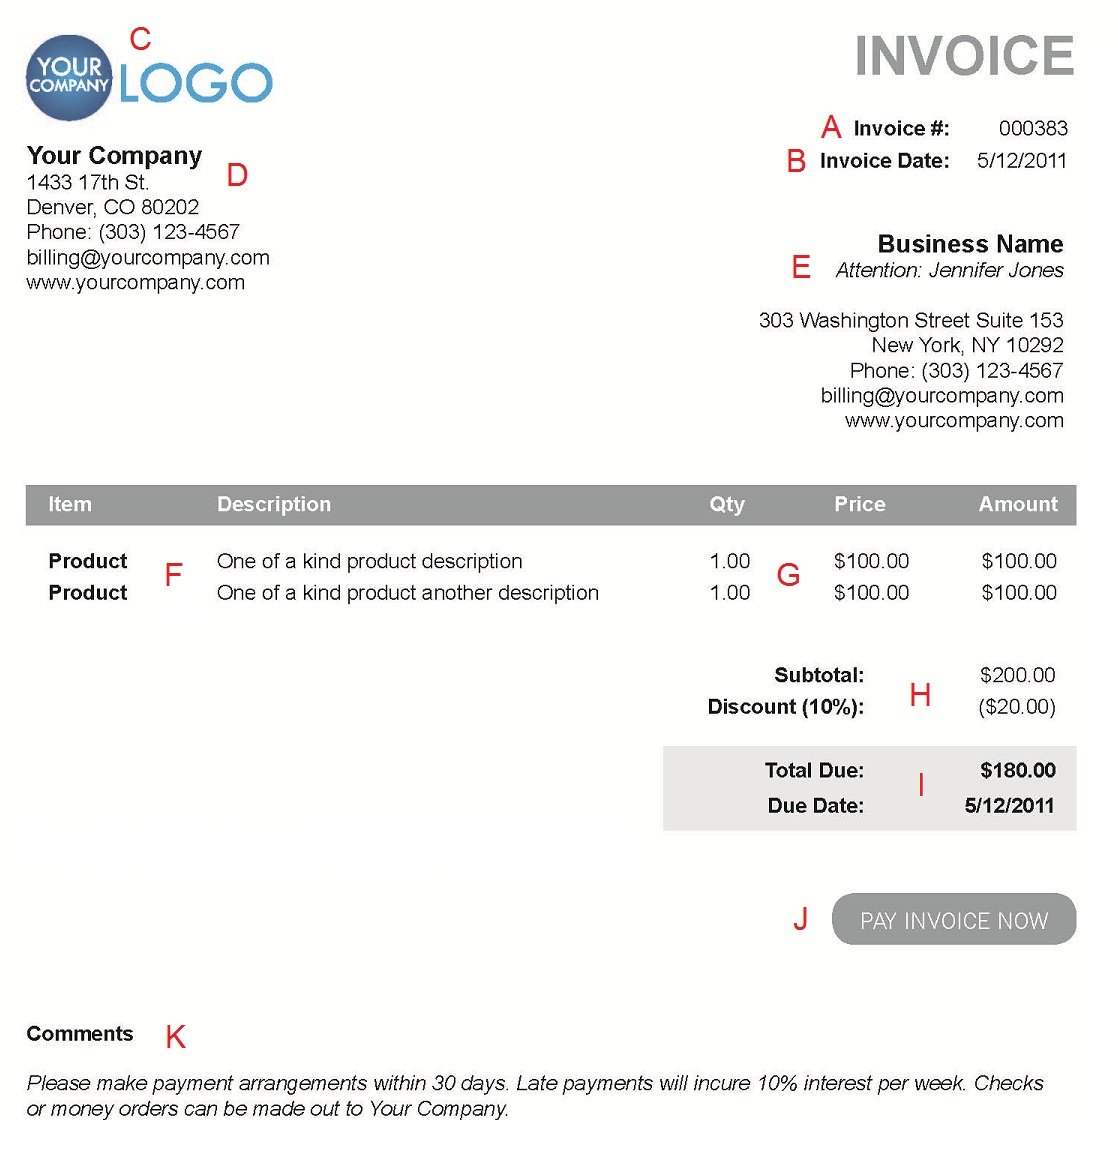 Patriotexpressus  Remarkable The  Different Sections Of An Electronic Payment Invoice With Handsome A  With Amusing Blank Invoice Paper Also Tow Truck Invoice In Addition Invoice Formats And Definition Of An Invoice As Well As Free Invoicing Software For Small Business Additionally Invoice Creator App From Paysimplecom With Patriotexpressus  Handsome The  Different Sections Of An Electronic Payment Invoice With Amusing A  And Remarkable Blank Invoice Paper Also Tow Truck Invoice In Addition Invoice Formats From Paysimplecom